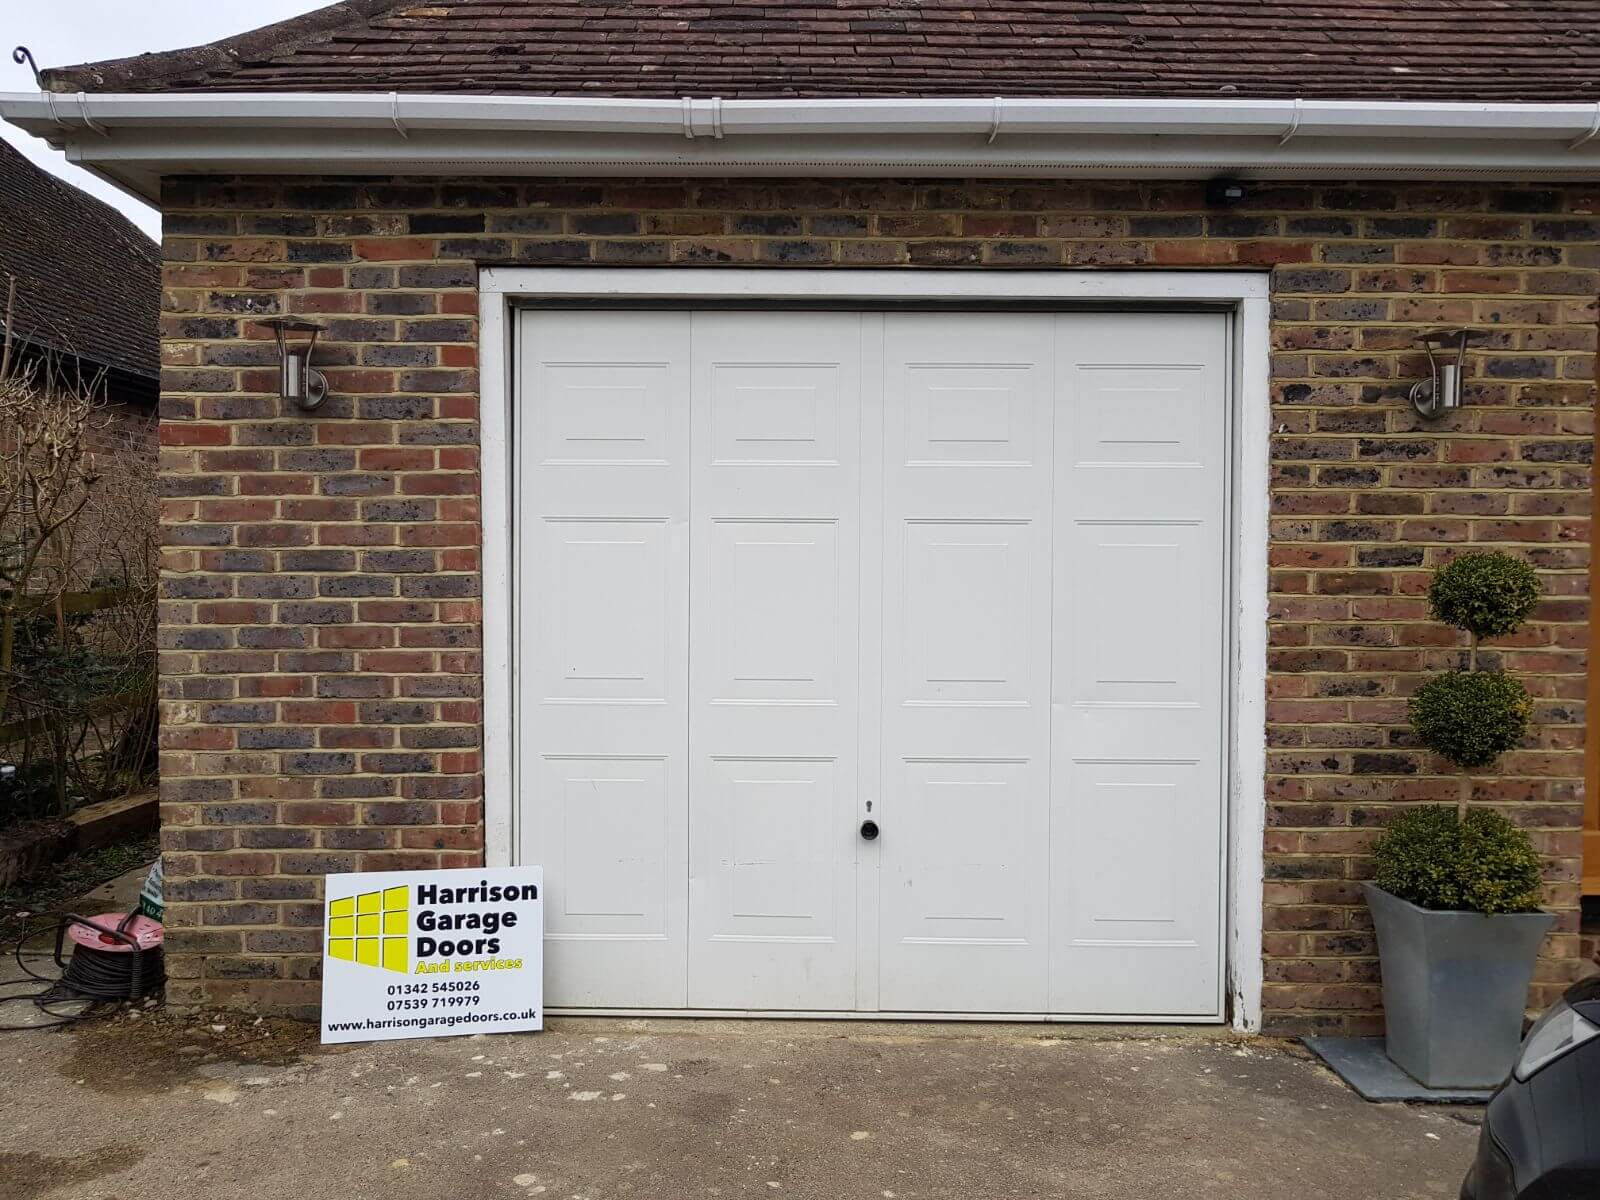 Garage Door Services In Sussex And Kent Harrison Garage Doors